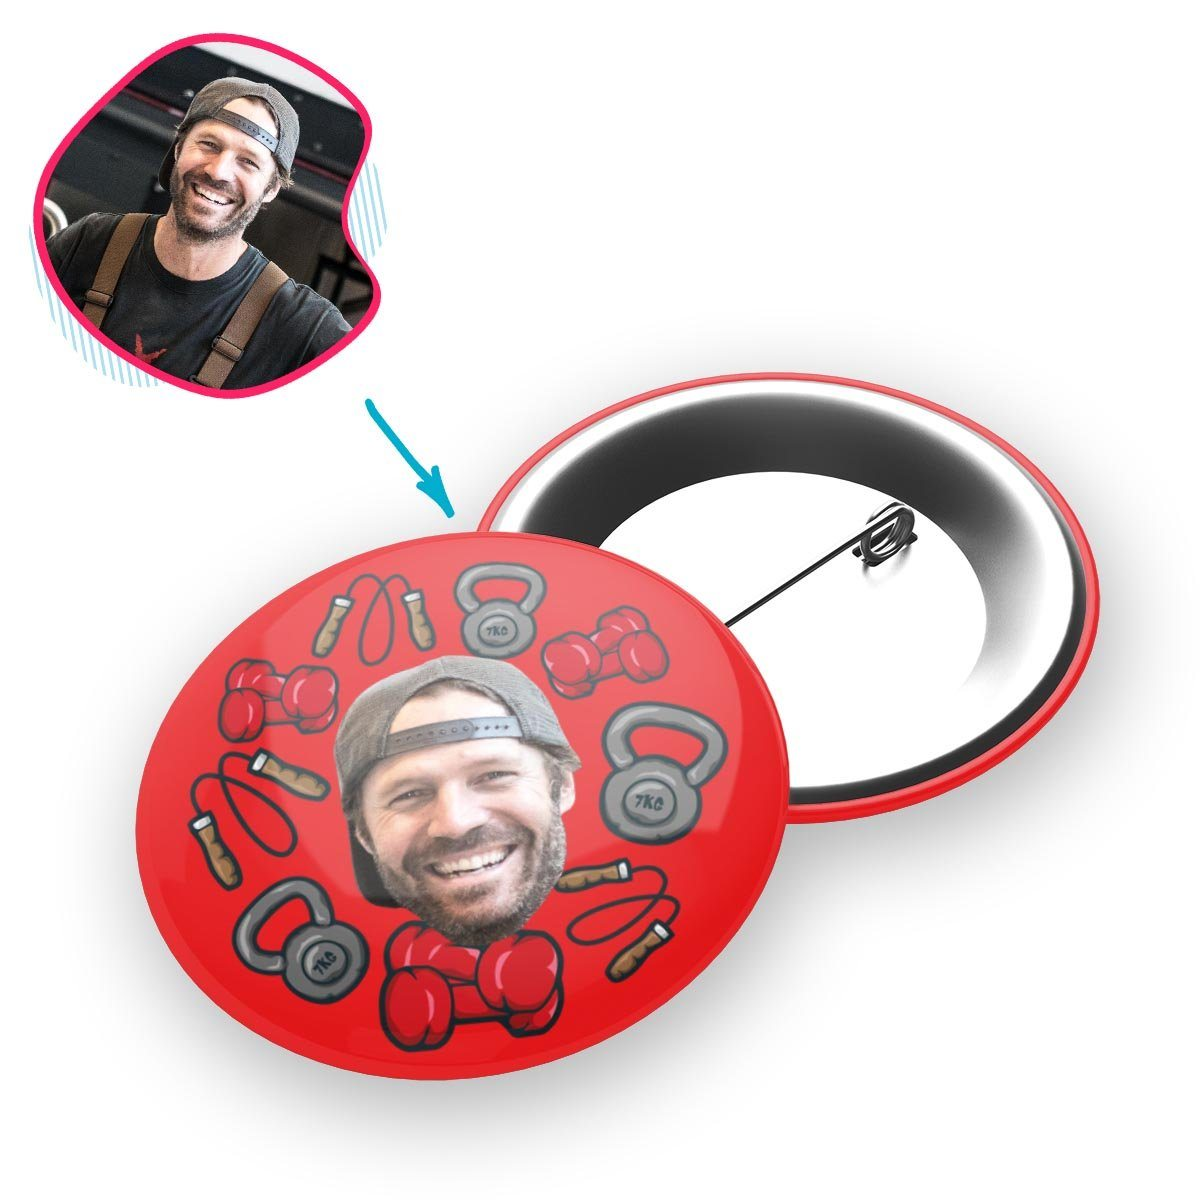 red Gym & Fitness pin personalized with photo of face printed on it